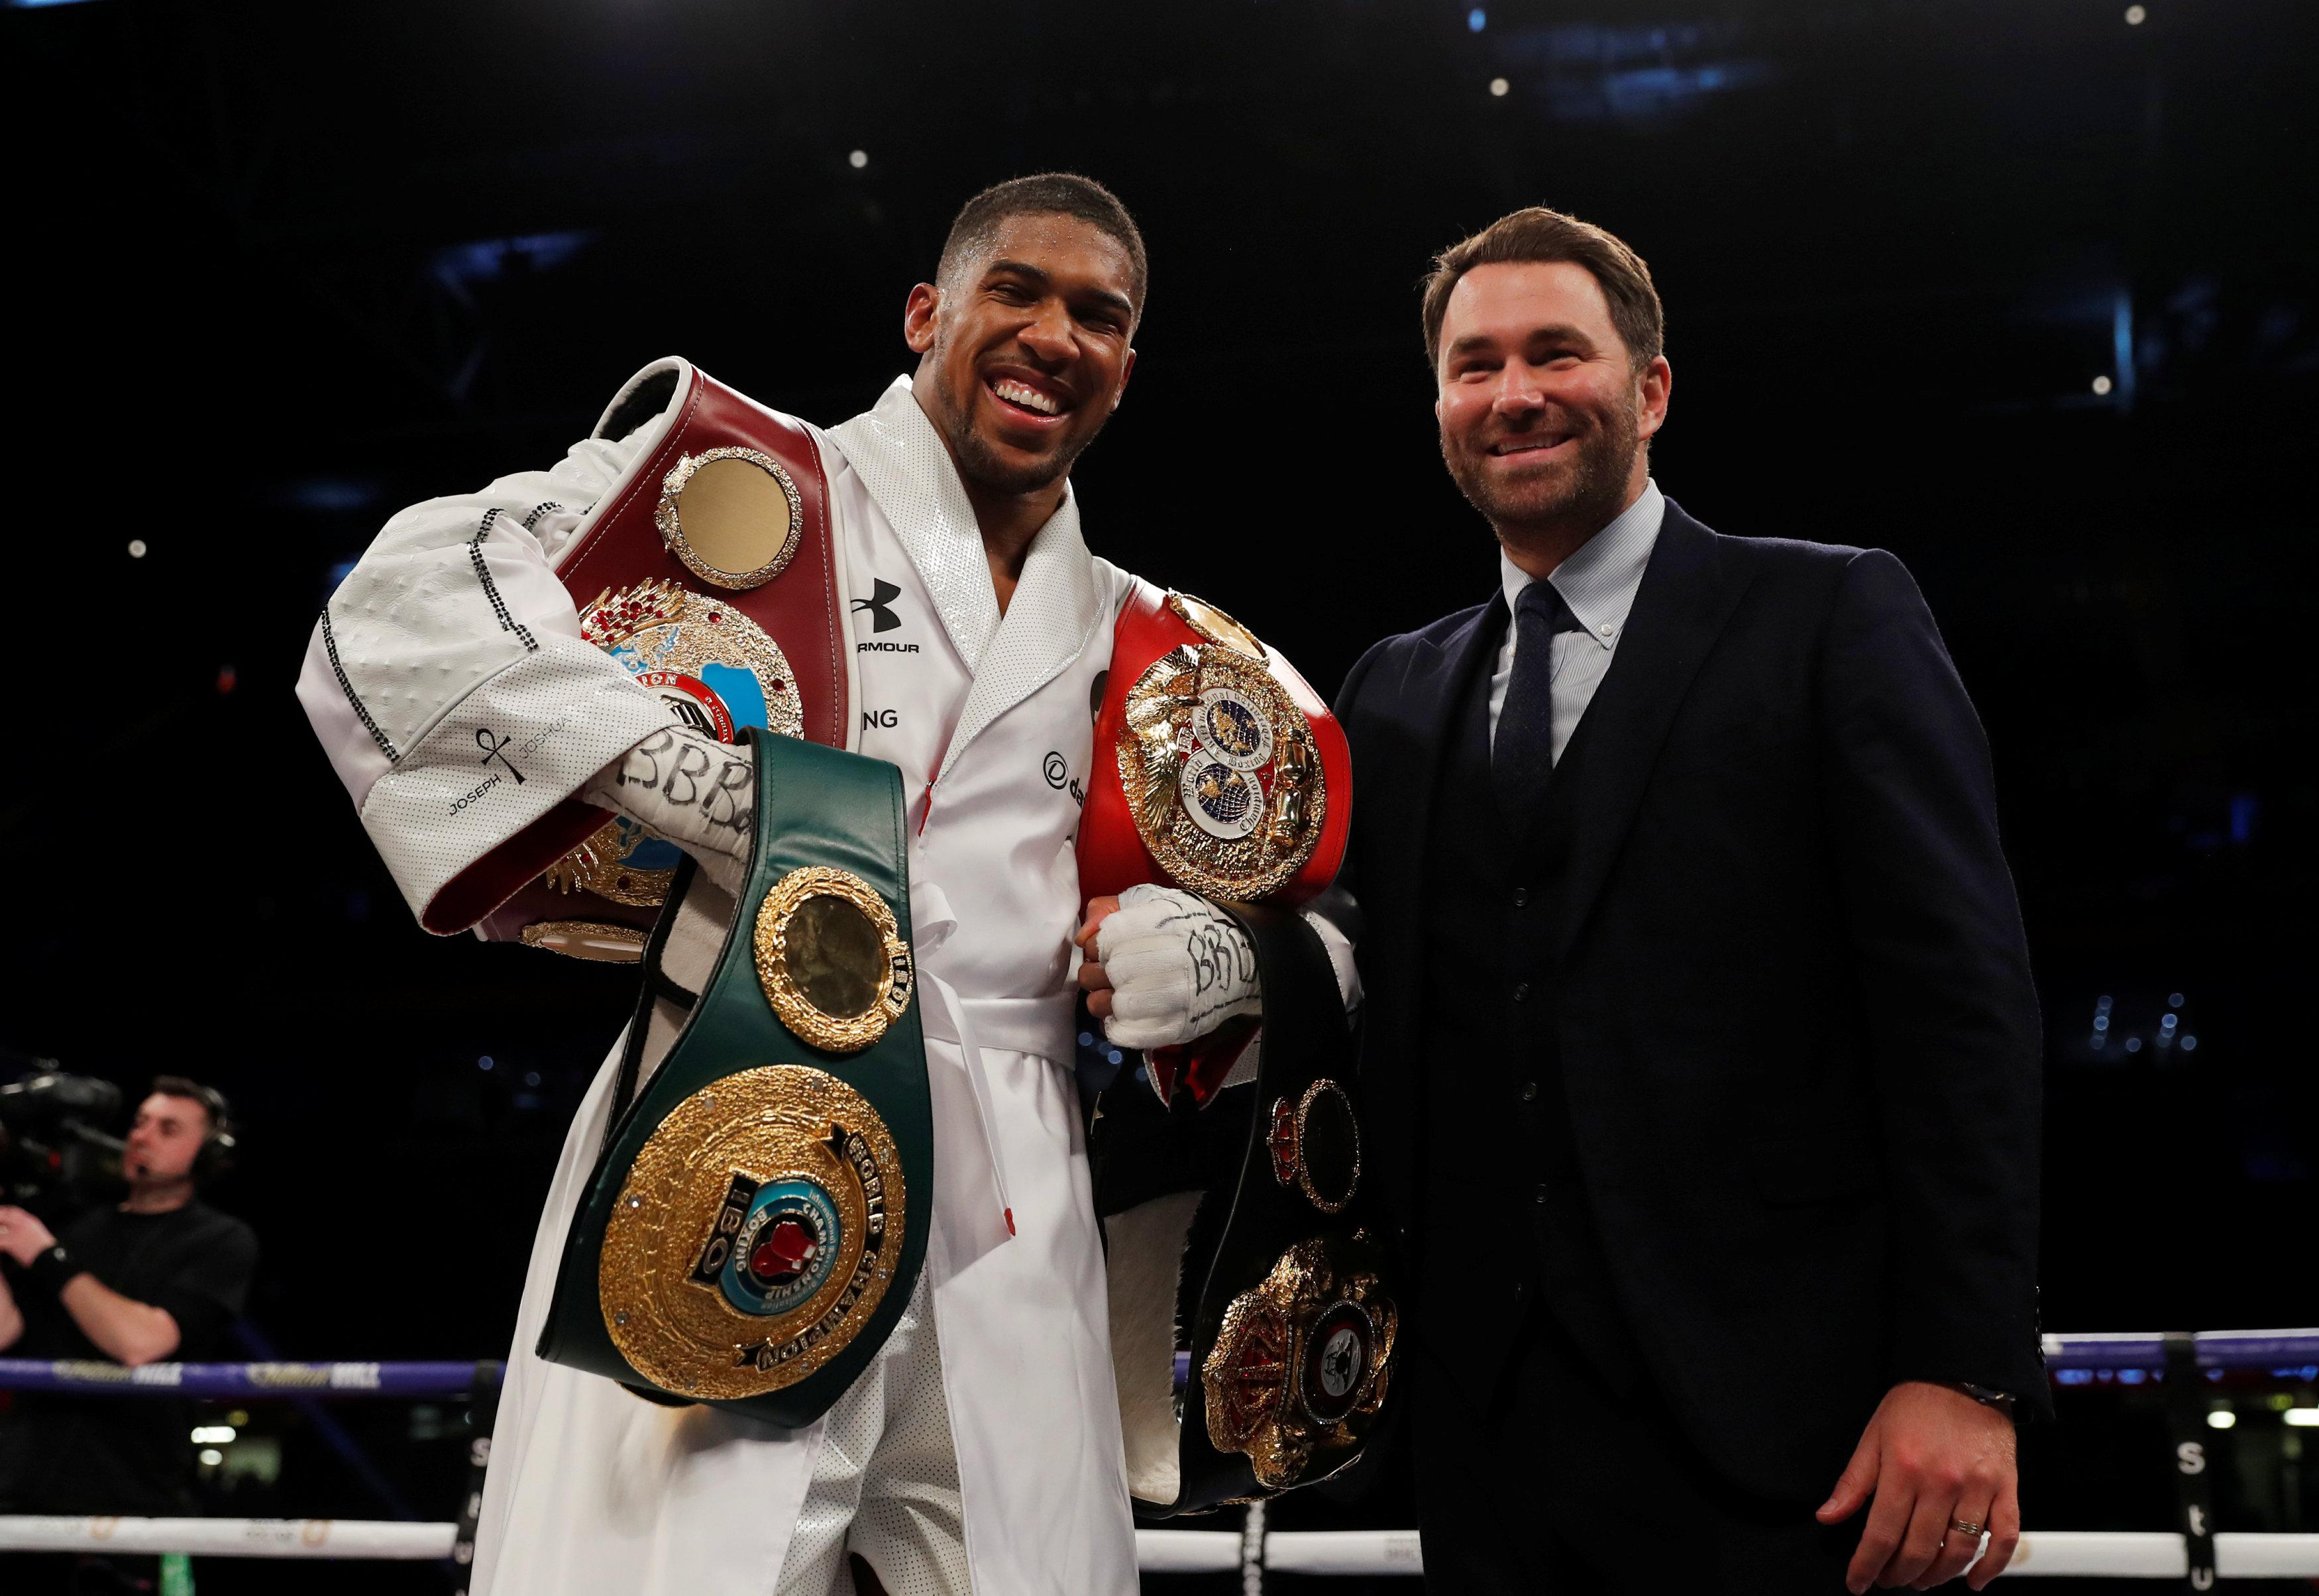 WBC champ Deontay Wilder has accused Anthony Joshua and Eddie Hearn of running scared